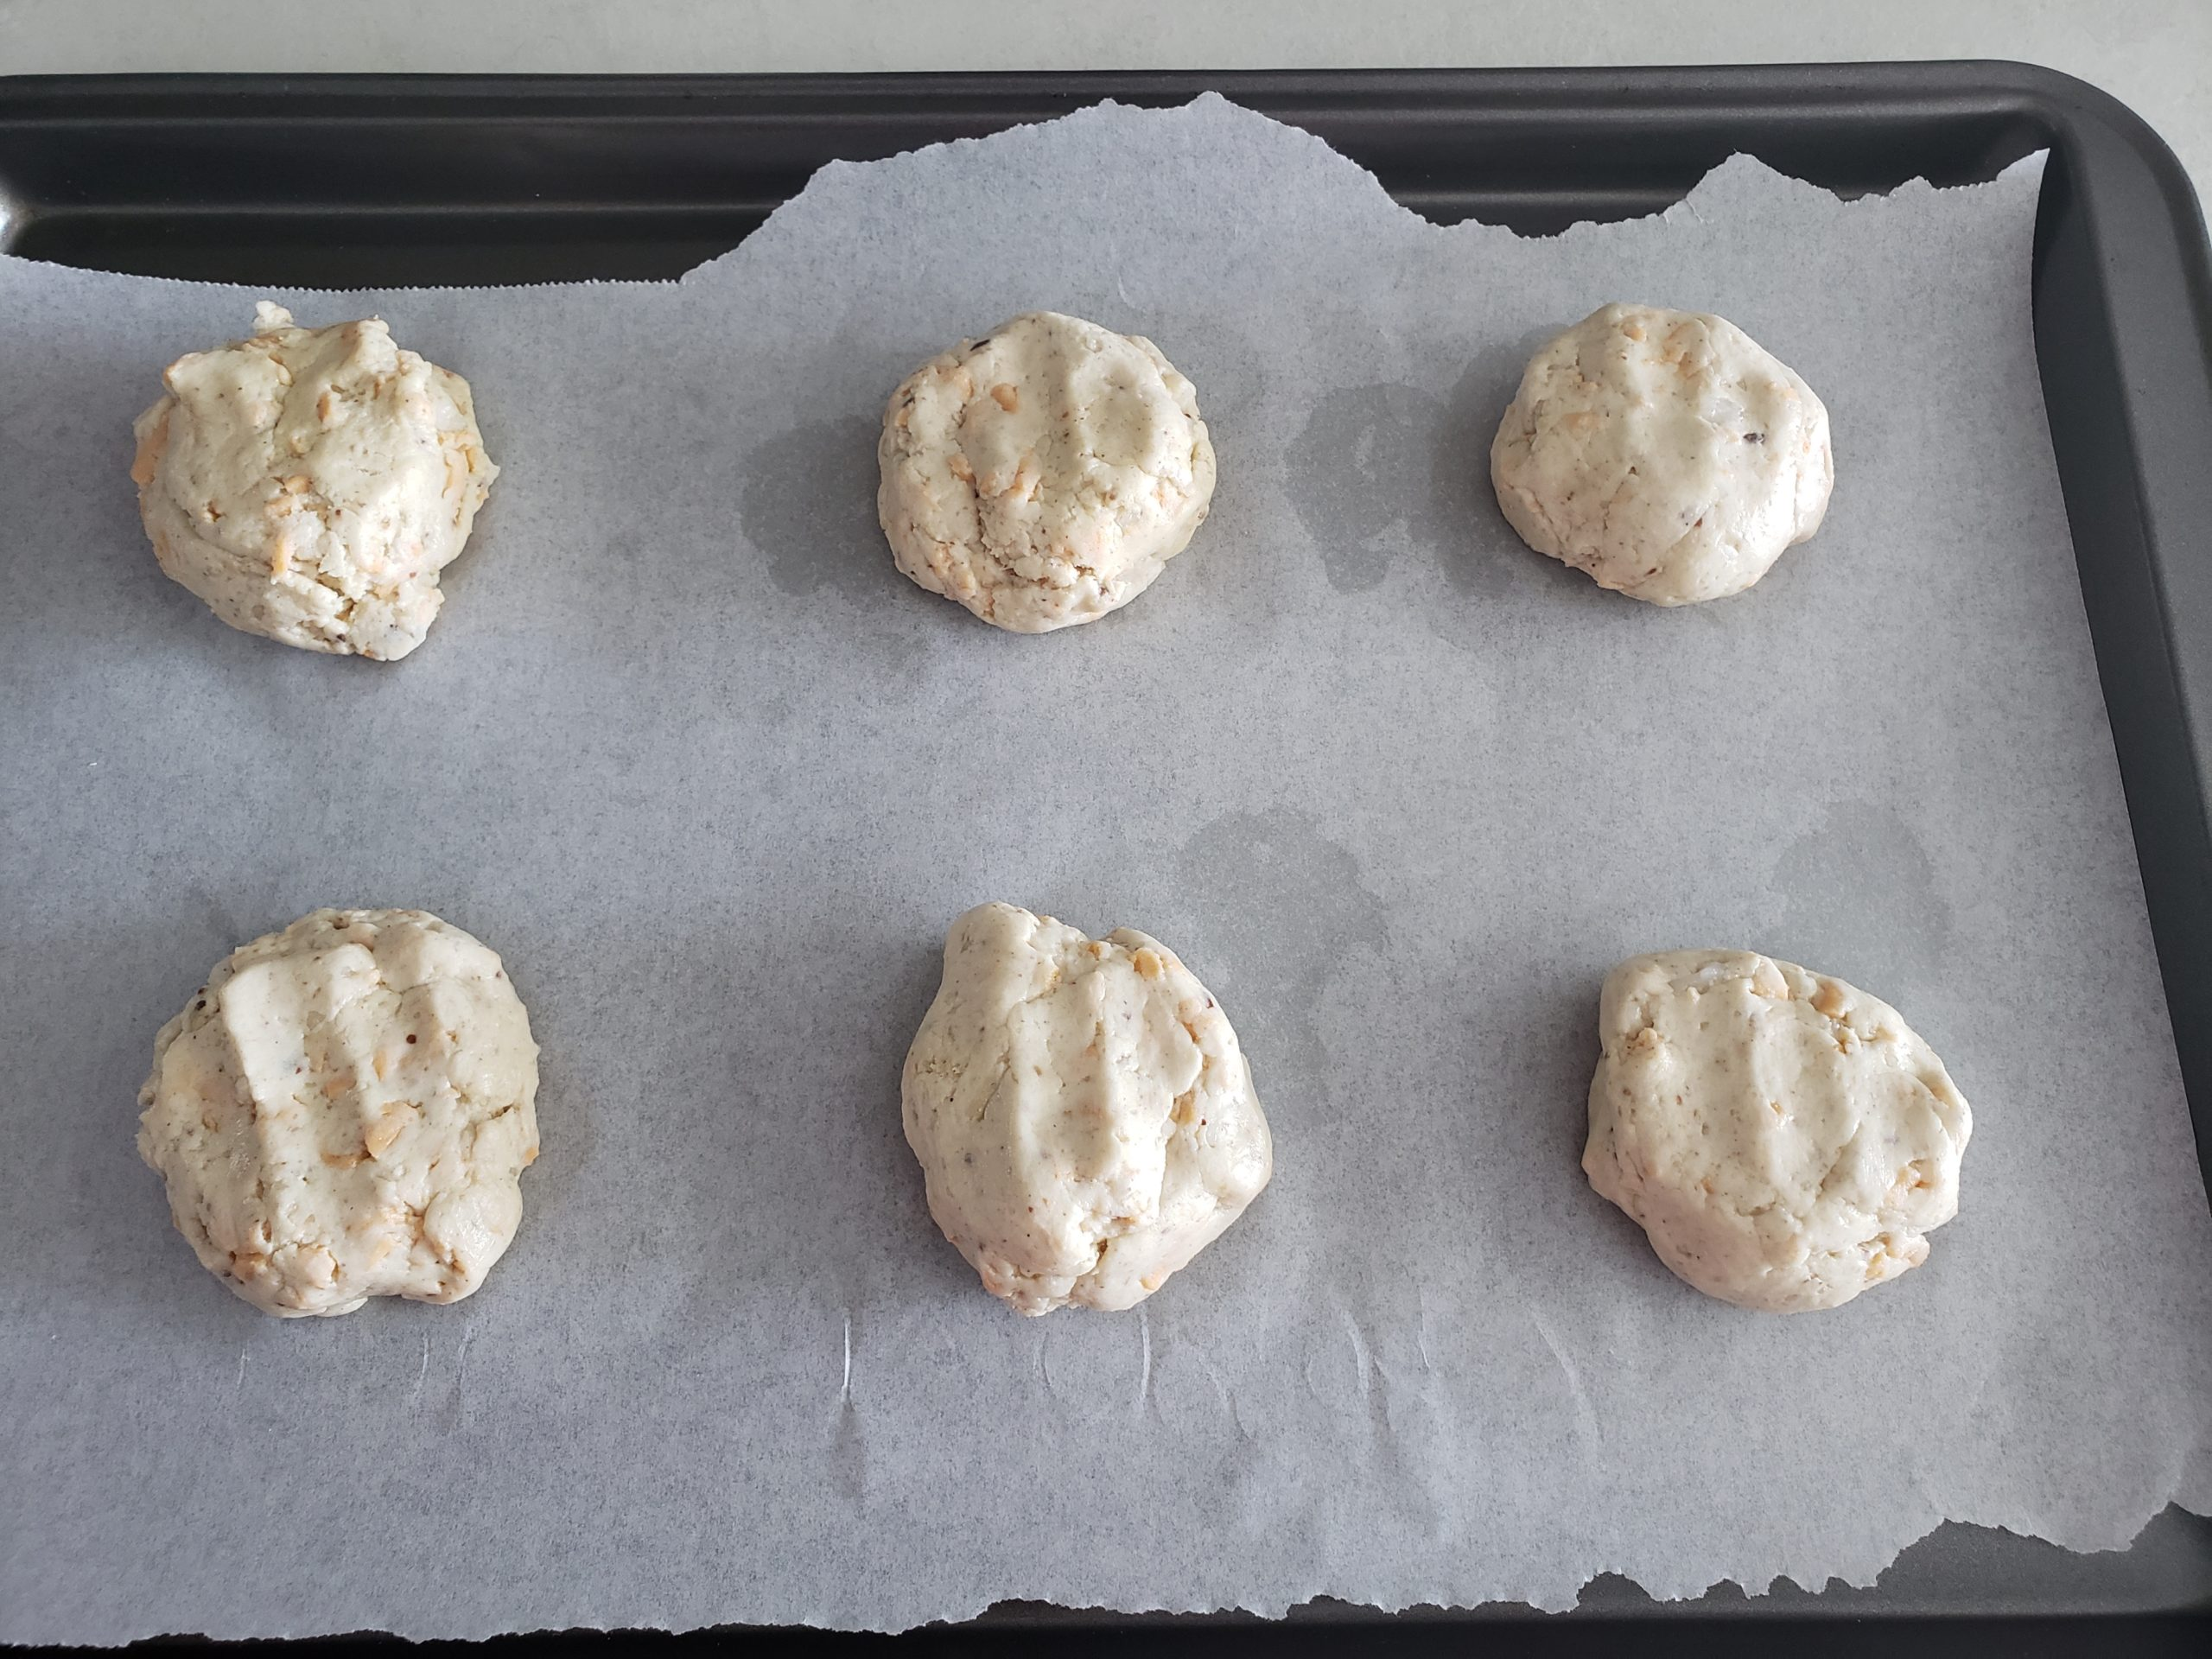 Pre-baked biscuits